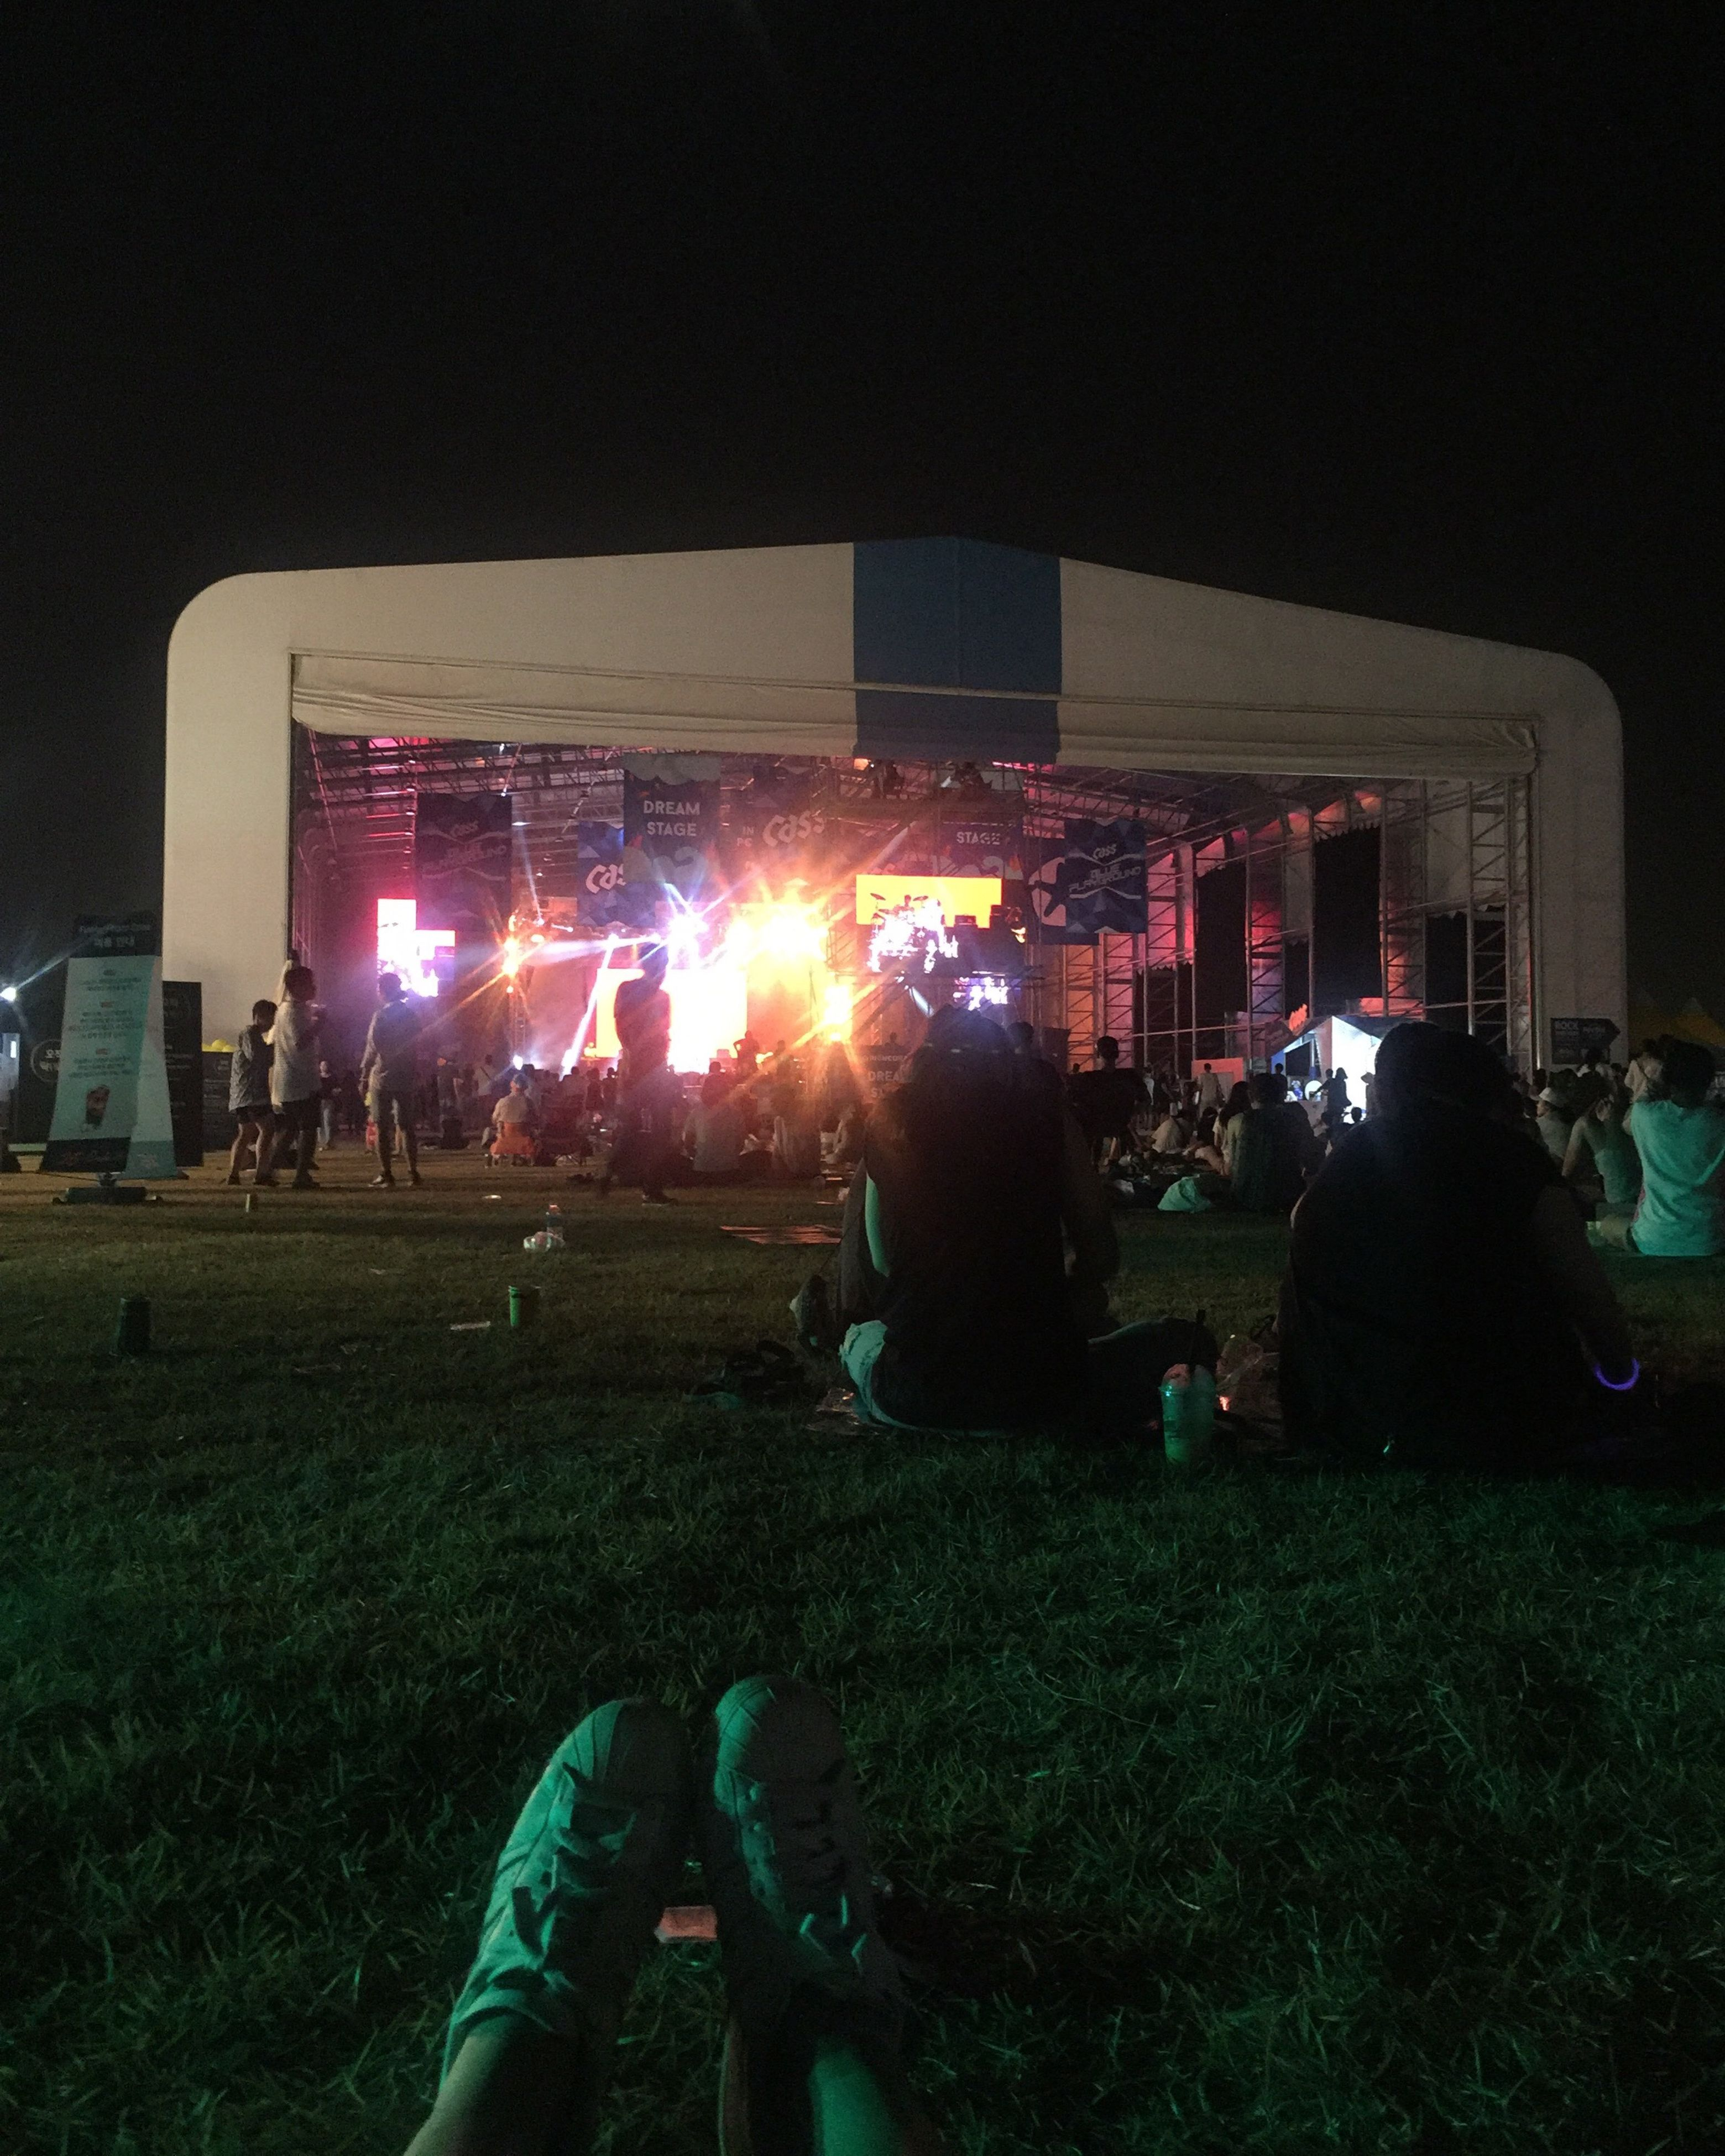 illuminated, night, grass, celebration, large group of people, arts culture and entertainment, men, event, field, crowd, performance, person, outdoors, lawn, group of objects, spectator, city life